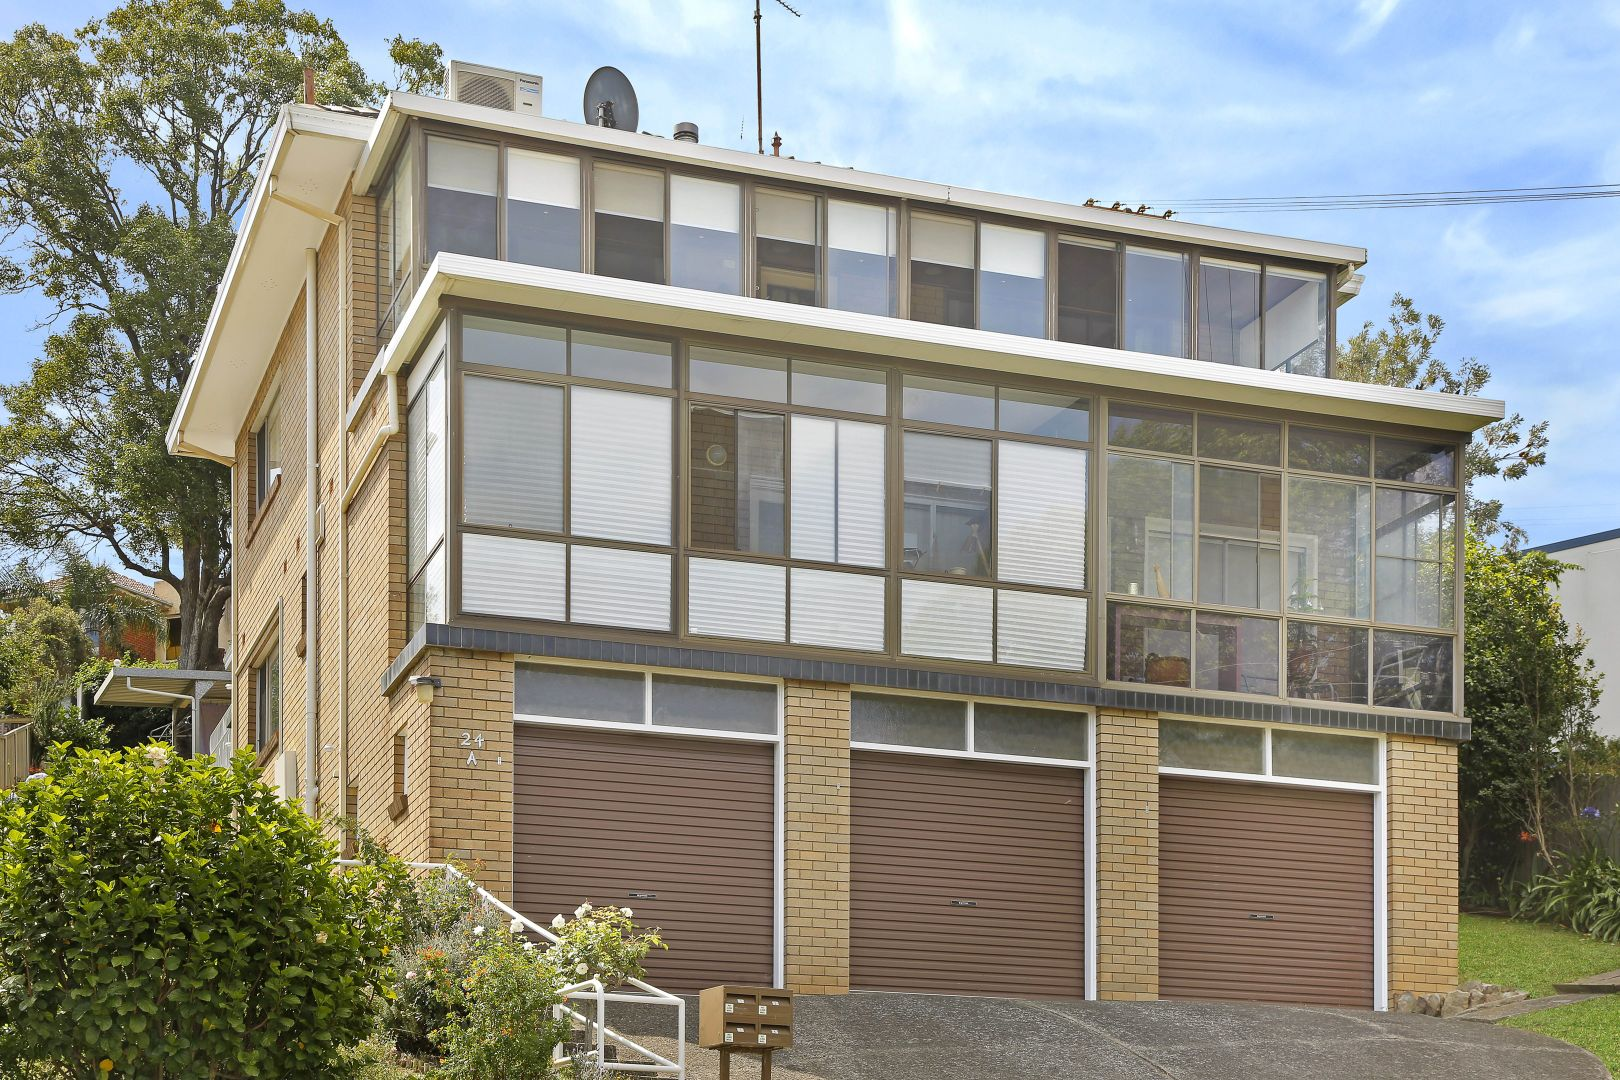 3/24A McKenzie Avenue, Wollongong NSW 2500, Image 0